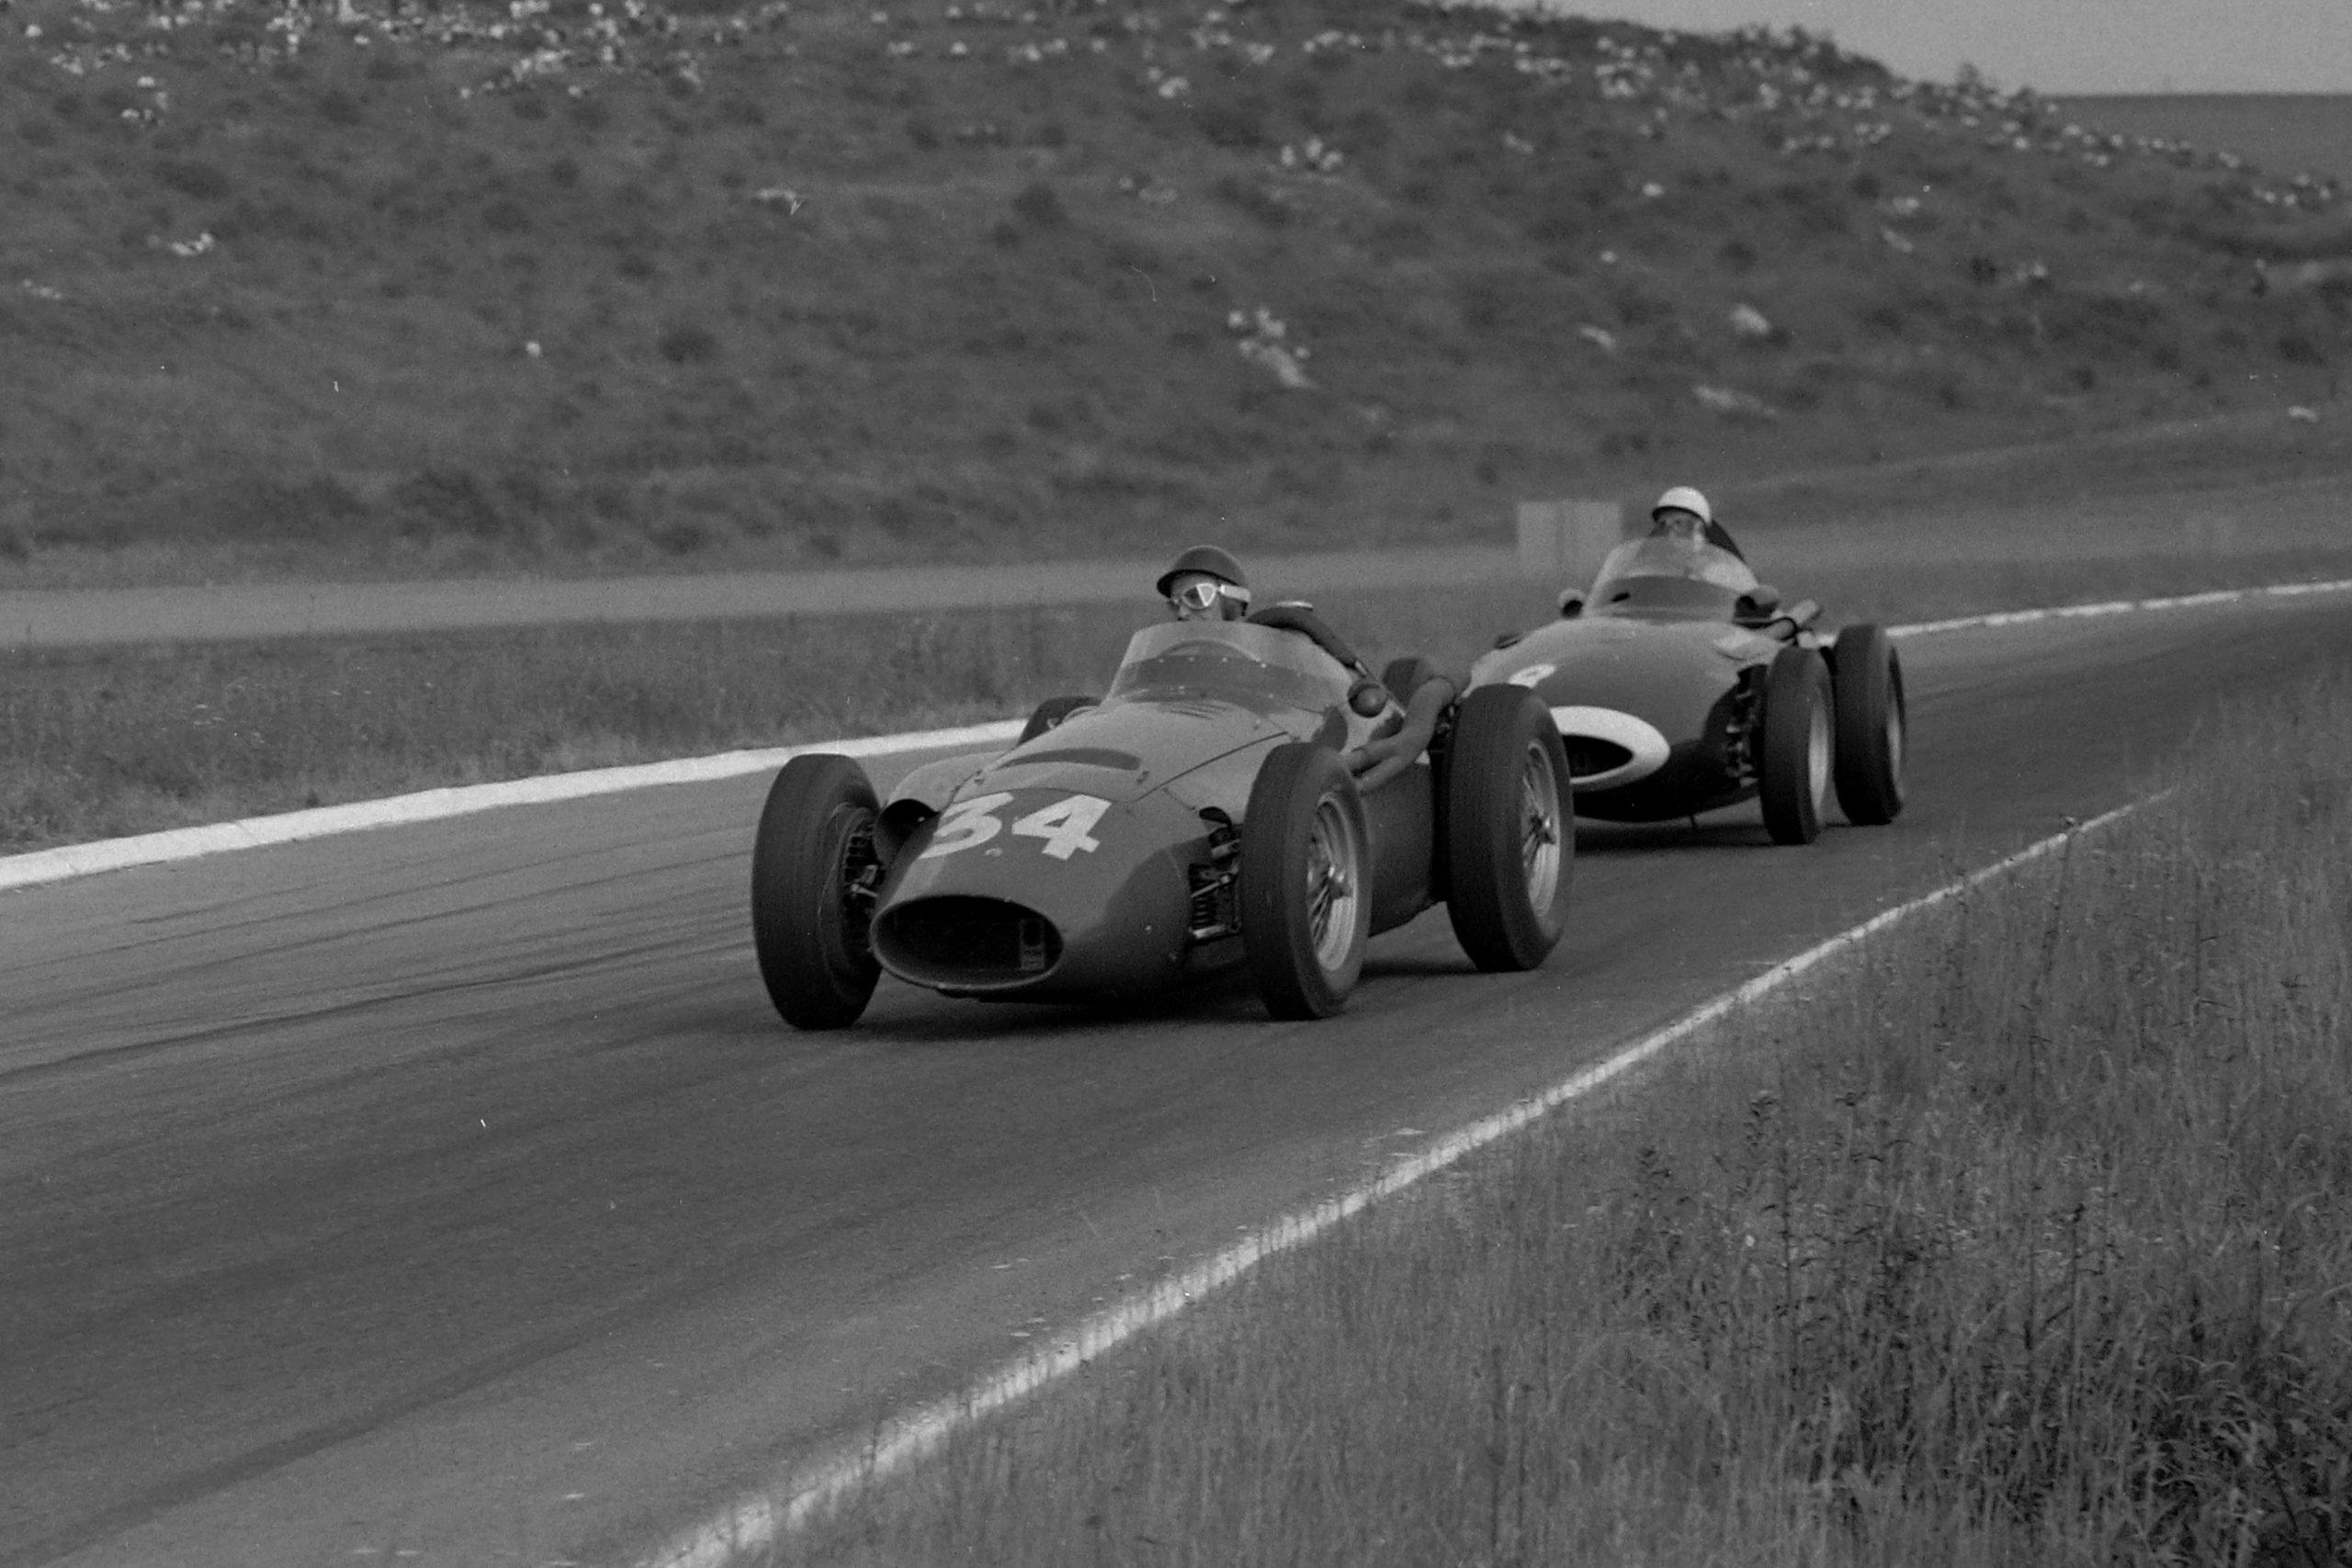 Juan Manuel Fangio in his Maserati 250F leads Stirling Moss in his Vanwall.